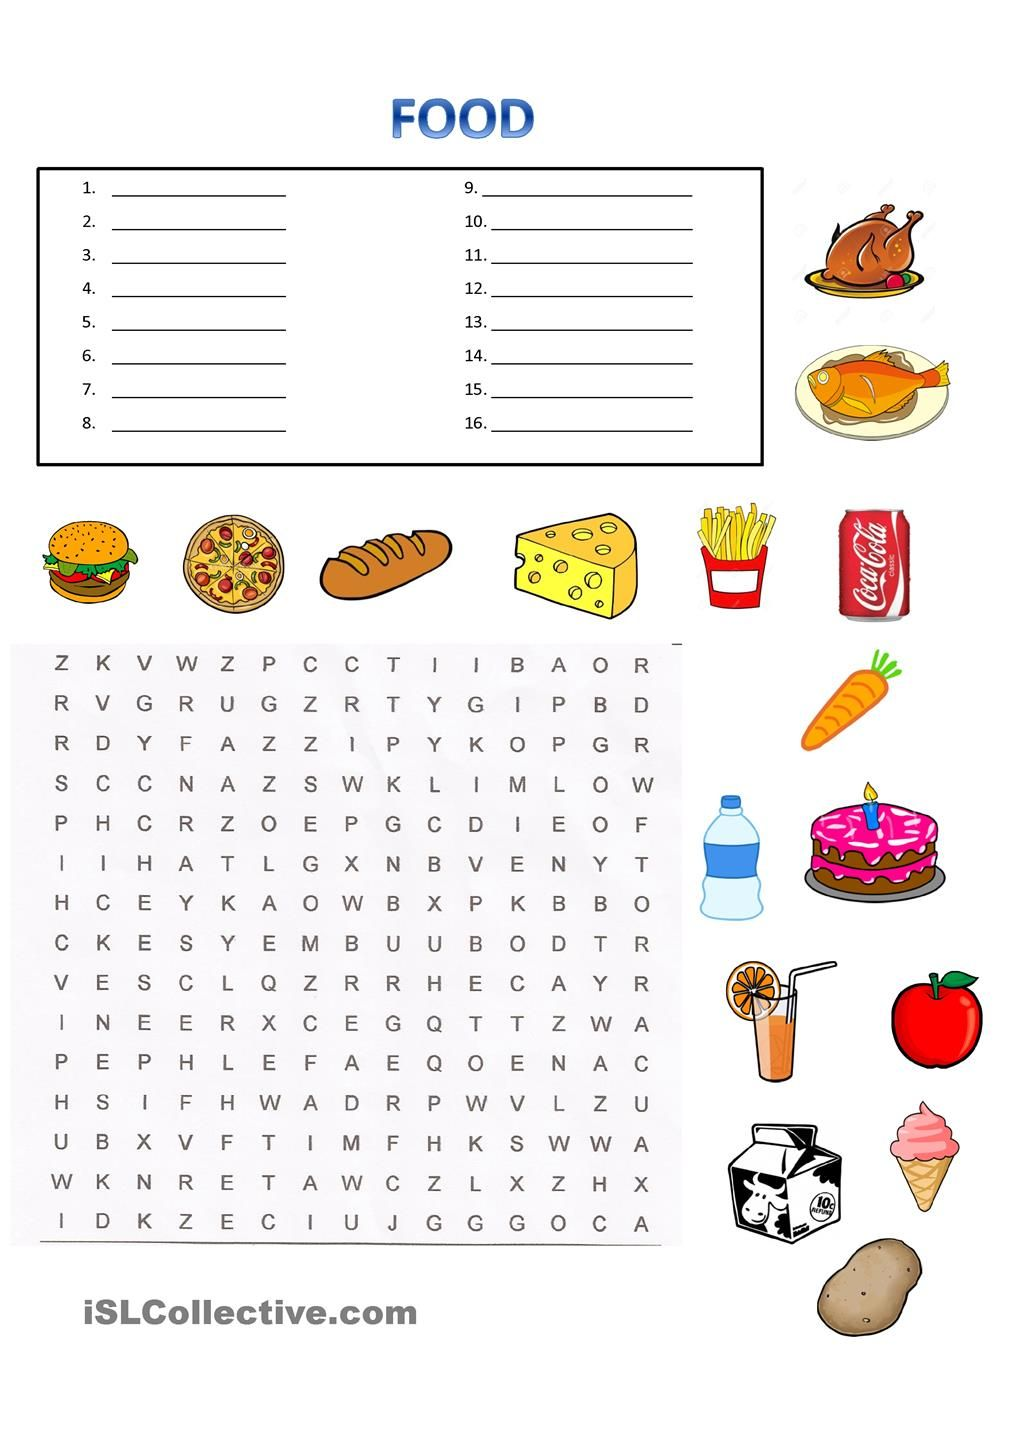 Workbooks spanish food worksheets : Pin by Mari Perätalo on Enkku | Pinterest | Foods, English and ...